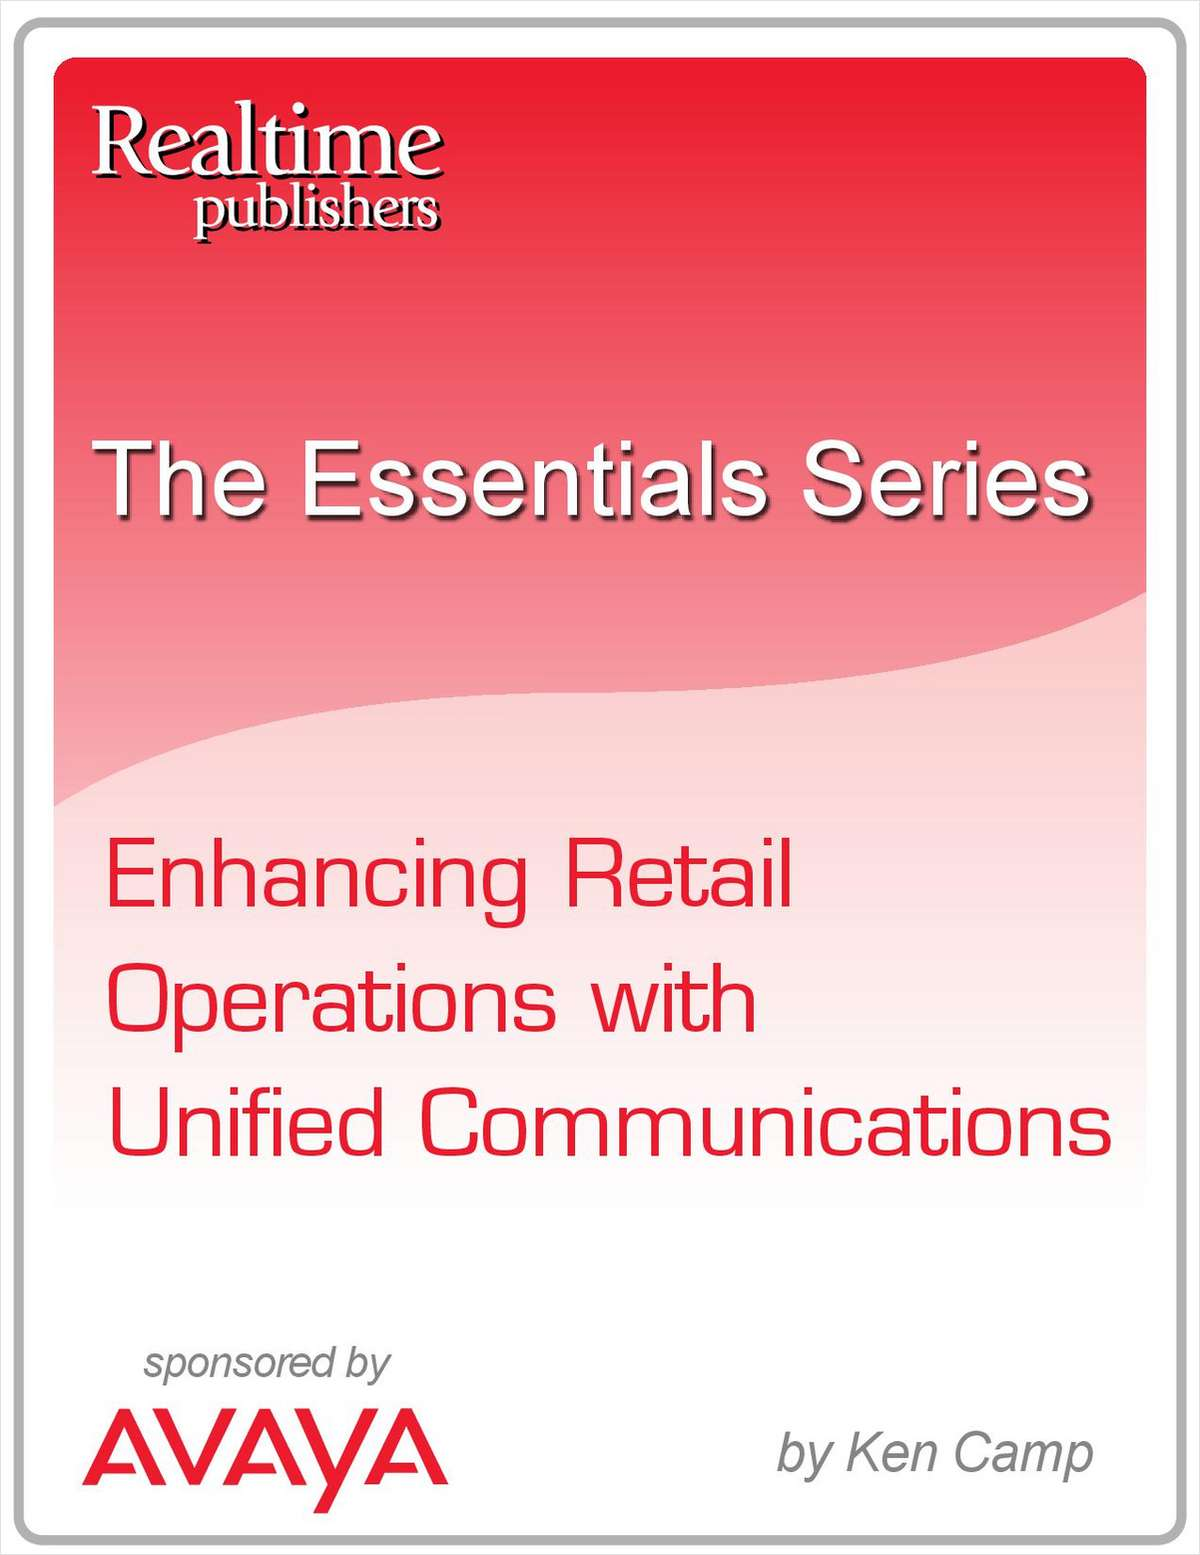 Enhancing Retail Operations with Unified Communications